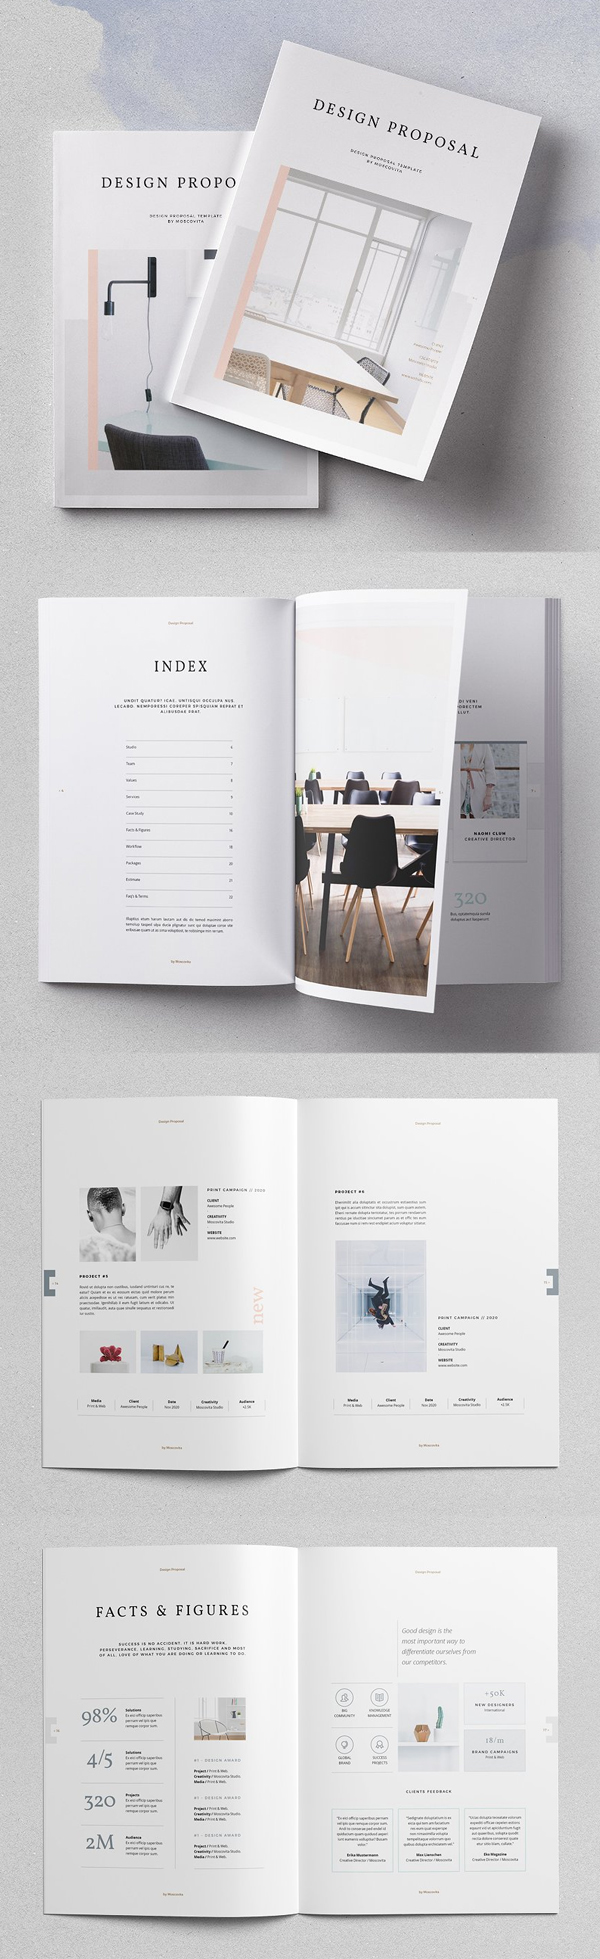 Professional Business Proposal Templates Design - 9